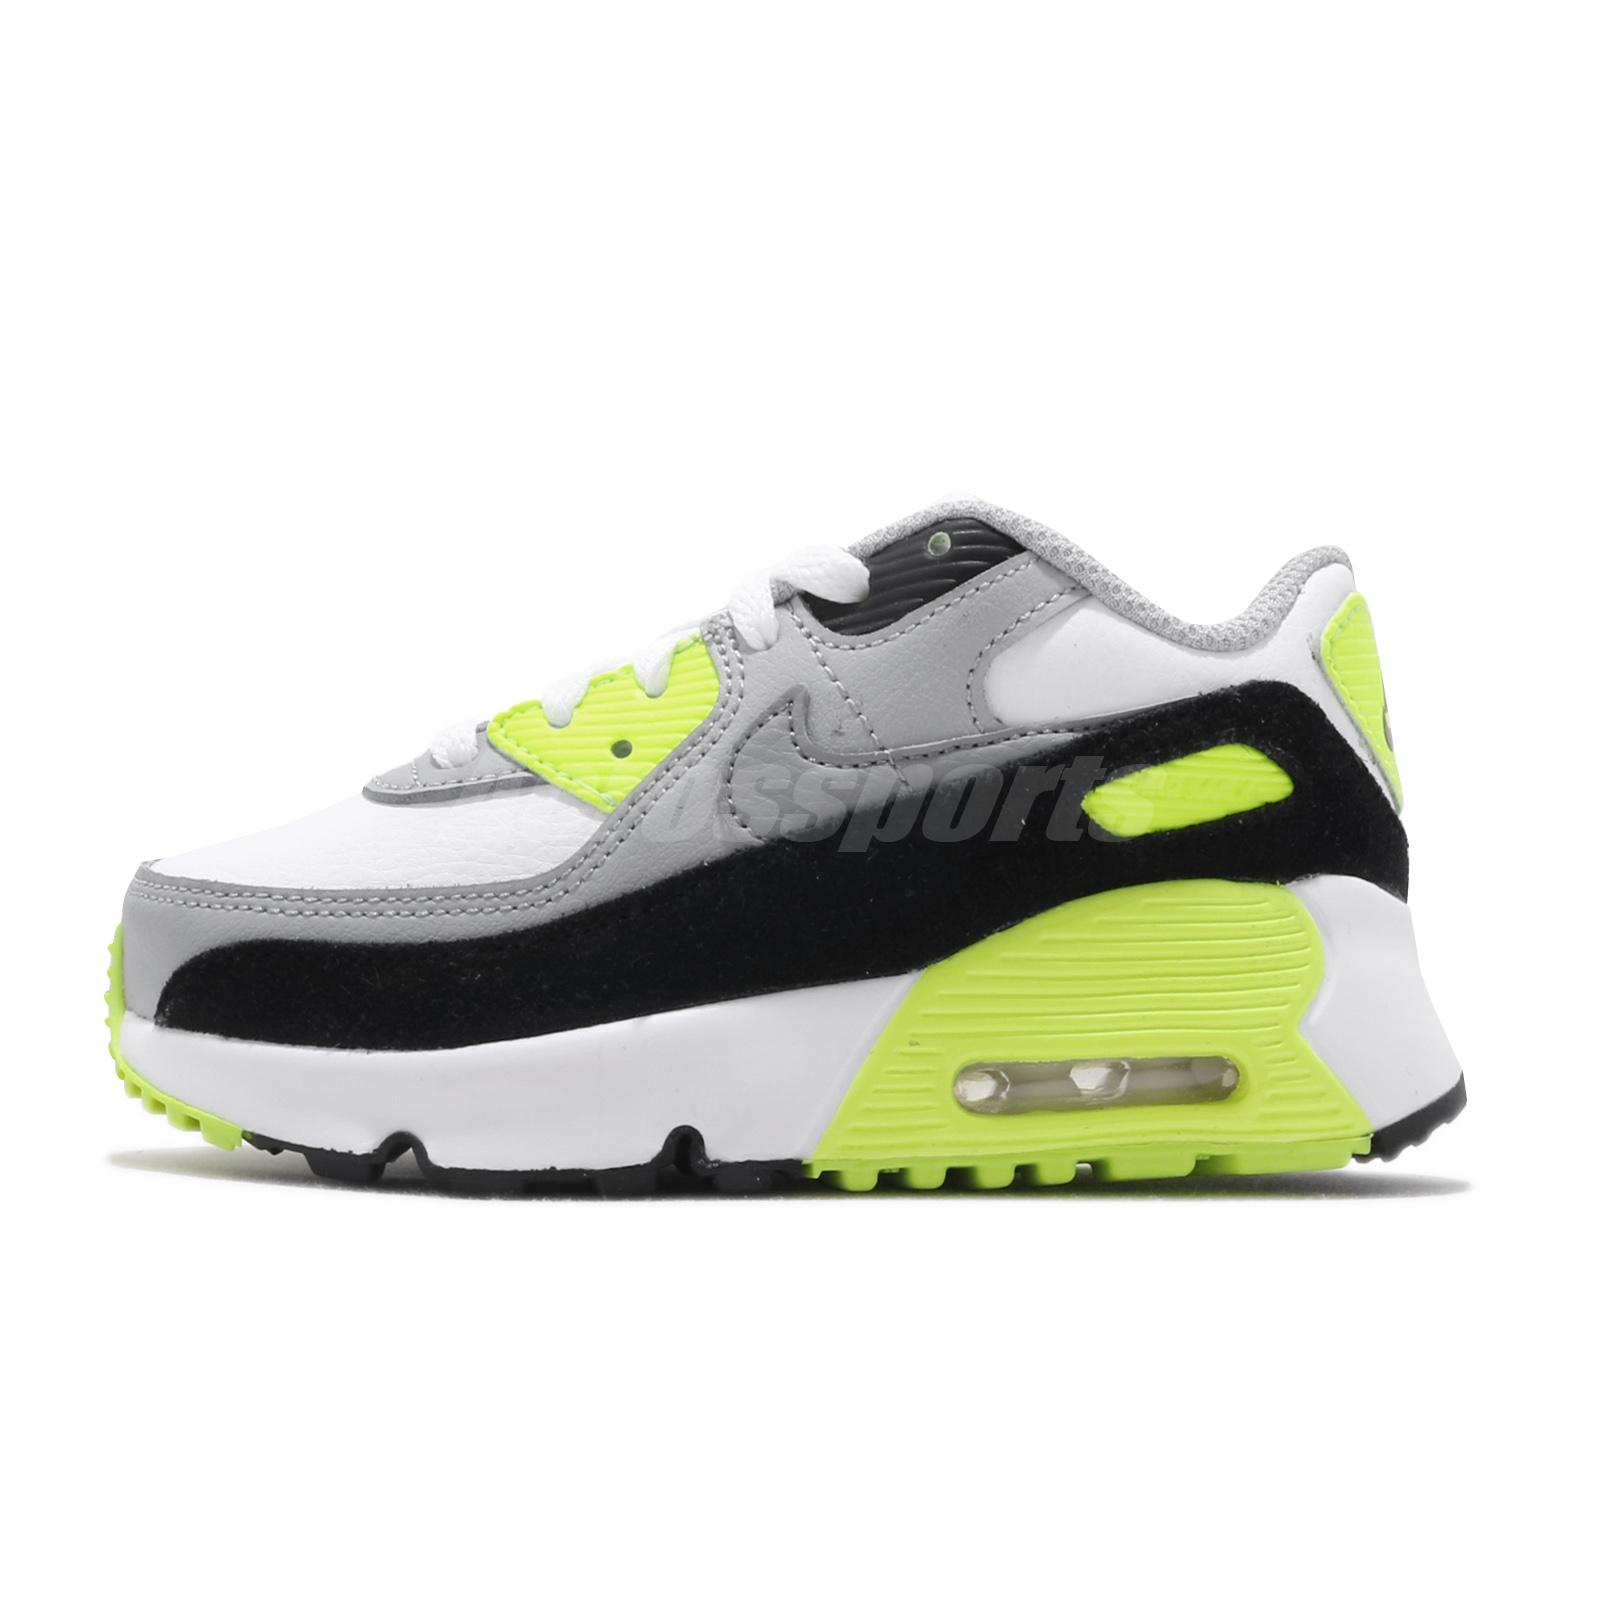 833416-001 Nike Air Max 90 Toddler Baby Black Casual Shoes TD